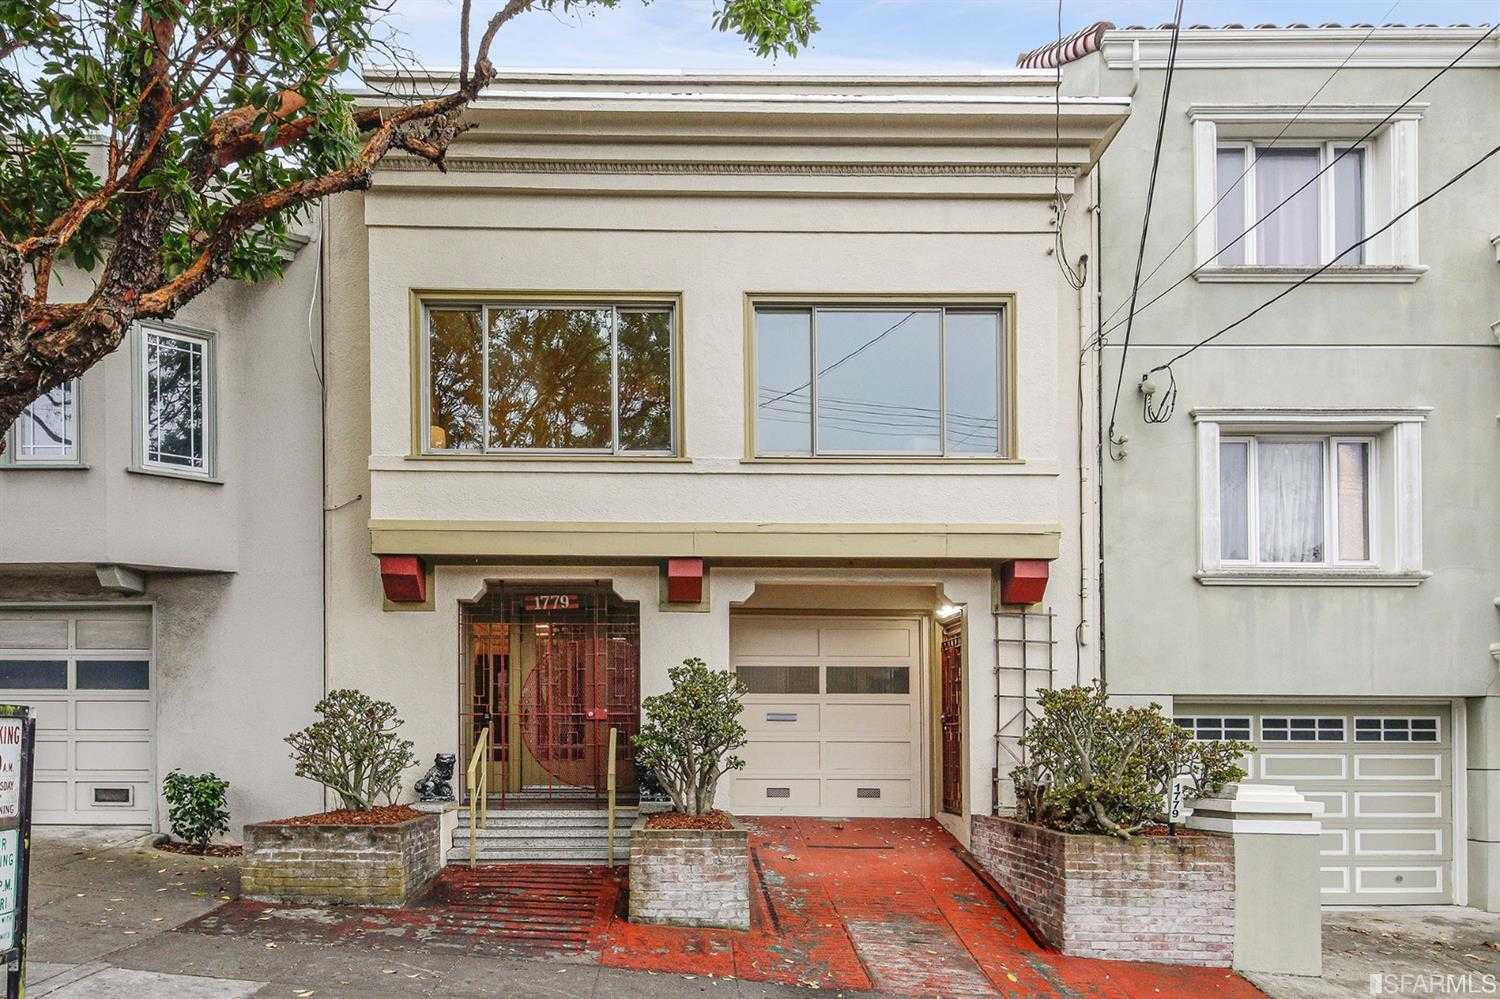 1779 10th Ave San Francisco, CA 94122